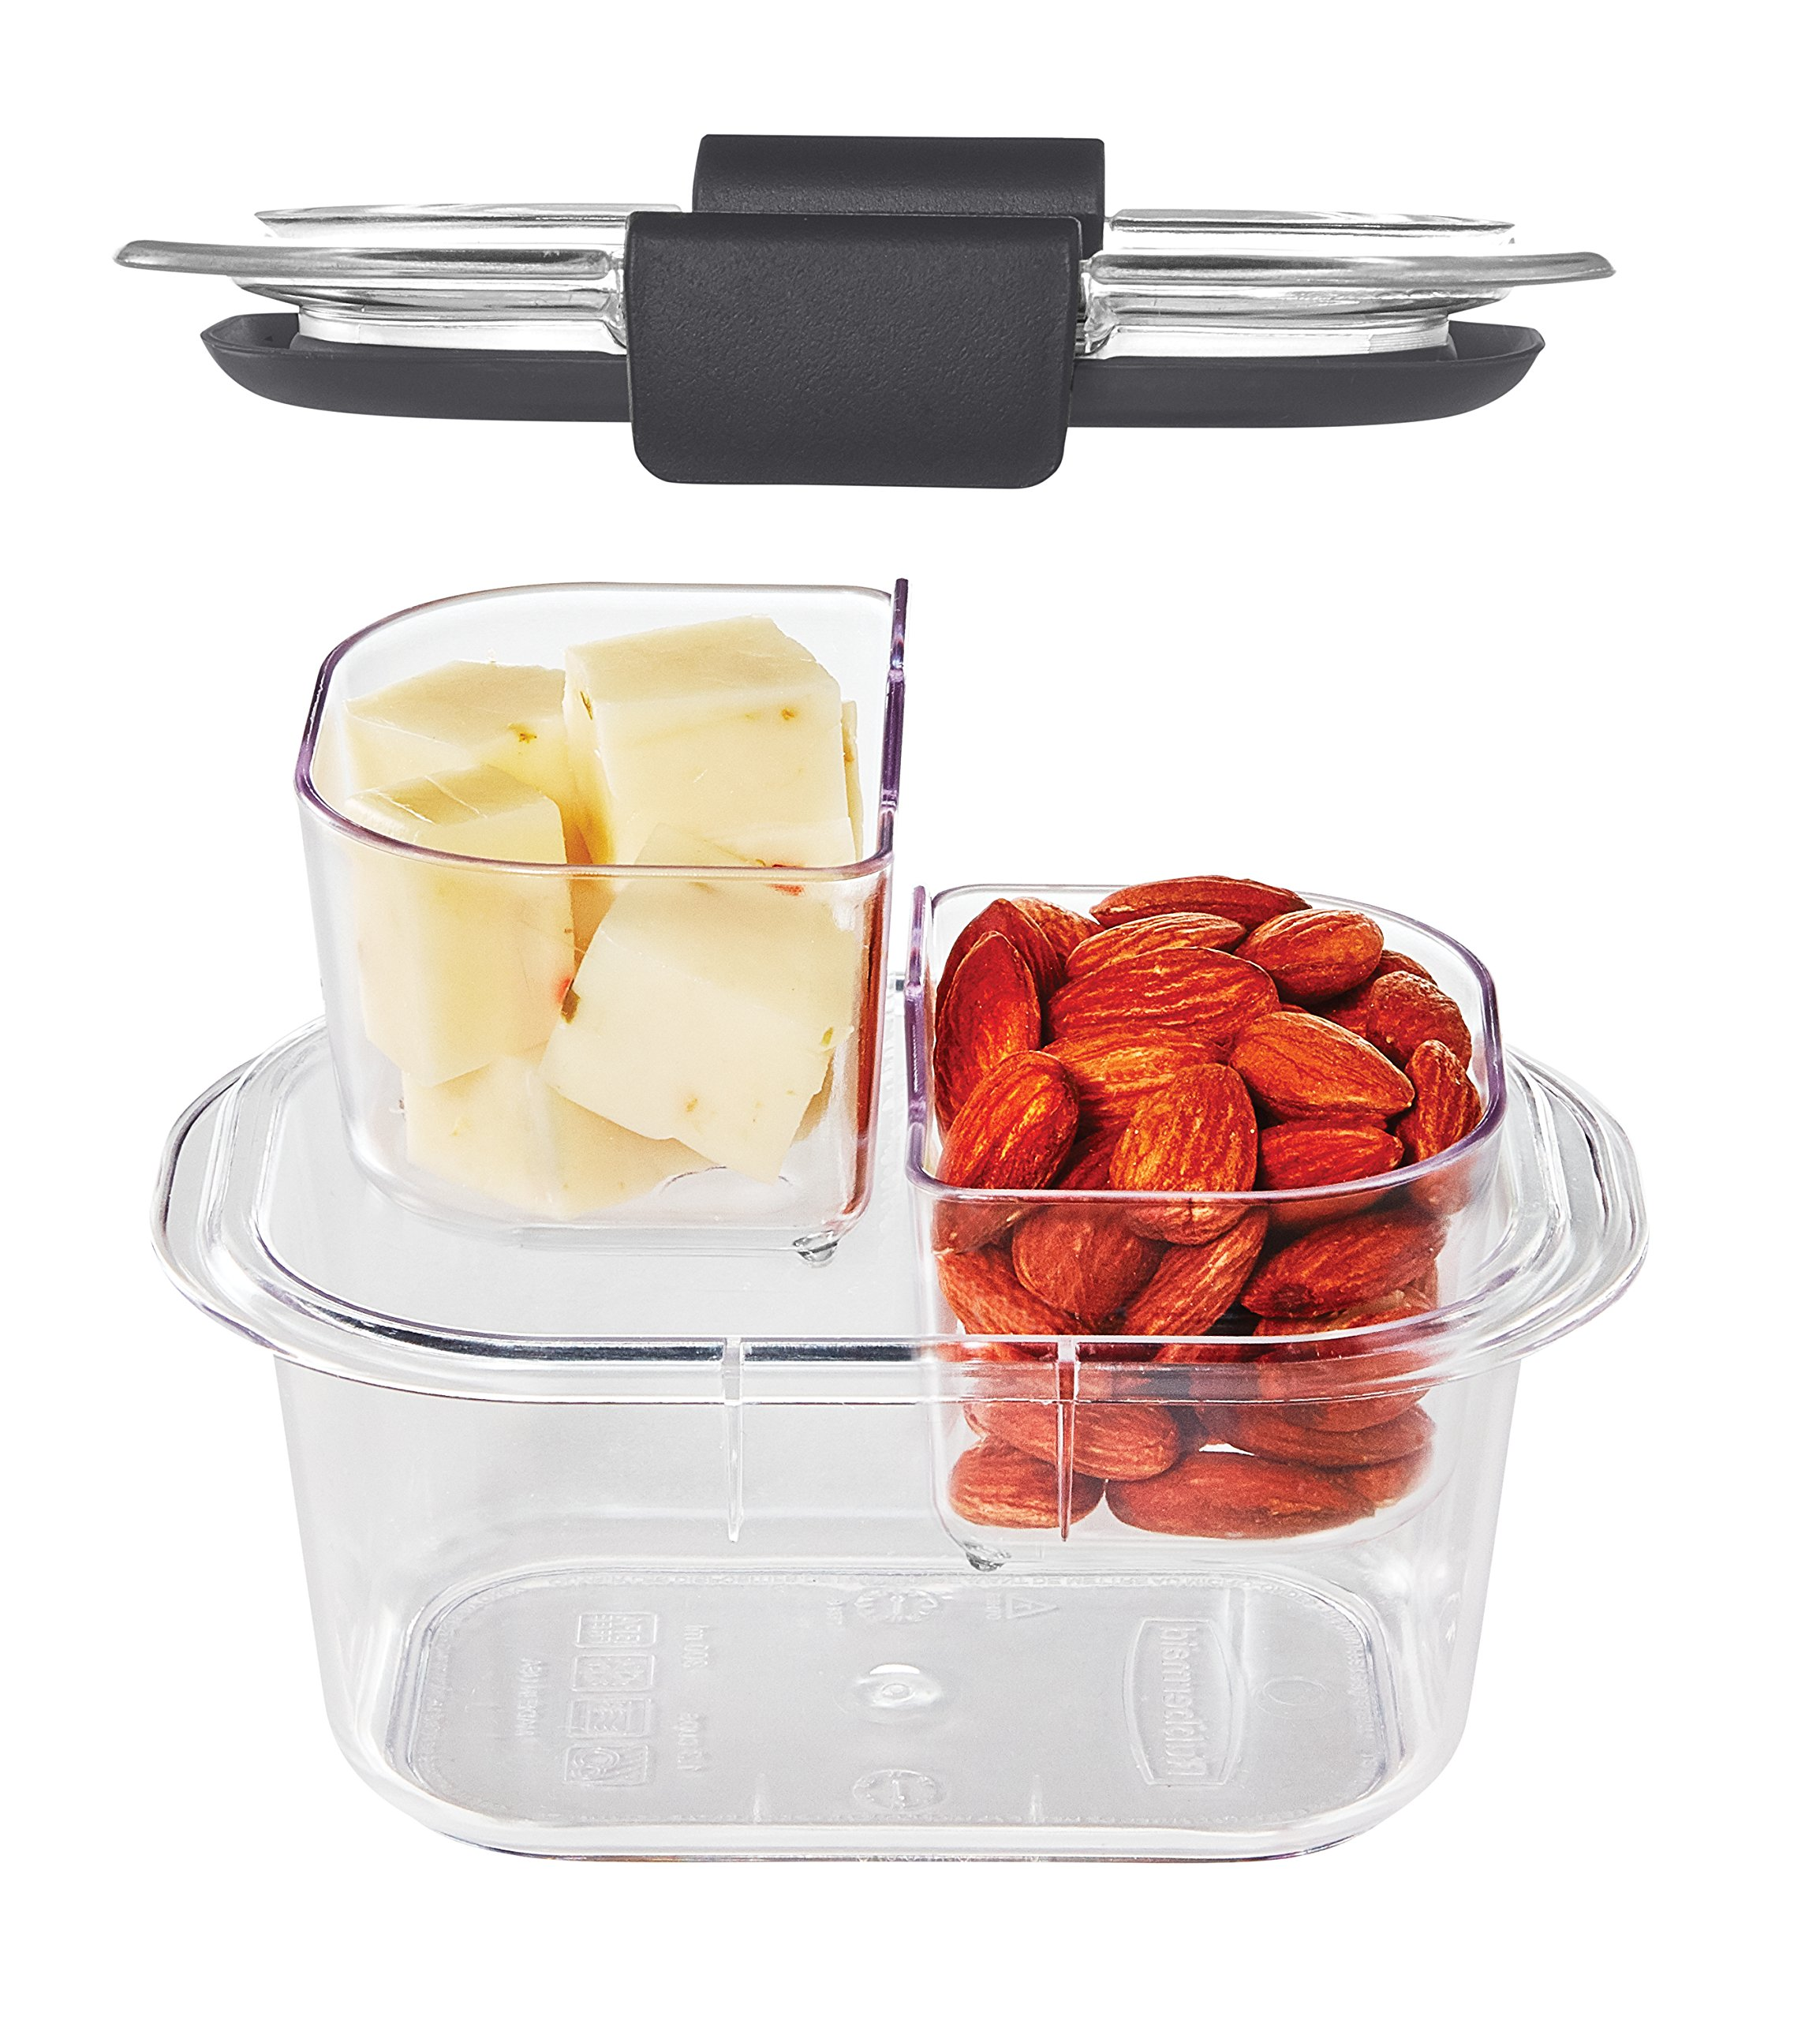 Rubbermaid Brilliance Food Storage Container, Sandwich and Snack Lunch Kit, Clear, 10-Piece Set 1997842 by Rubbermaid (Image #4)